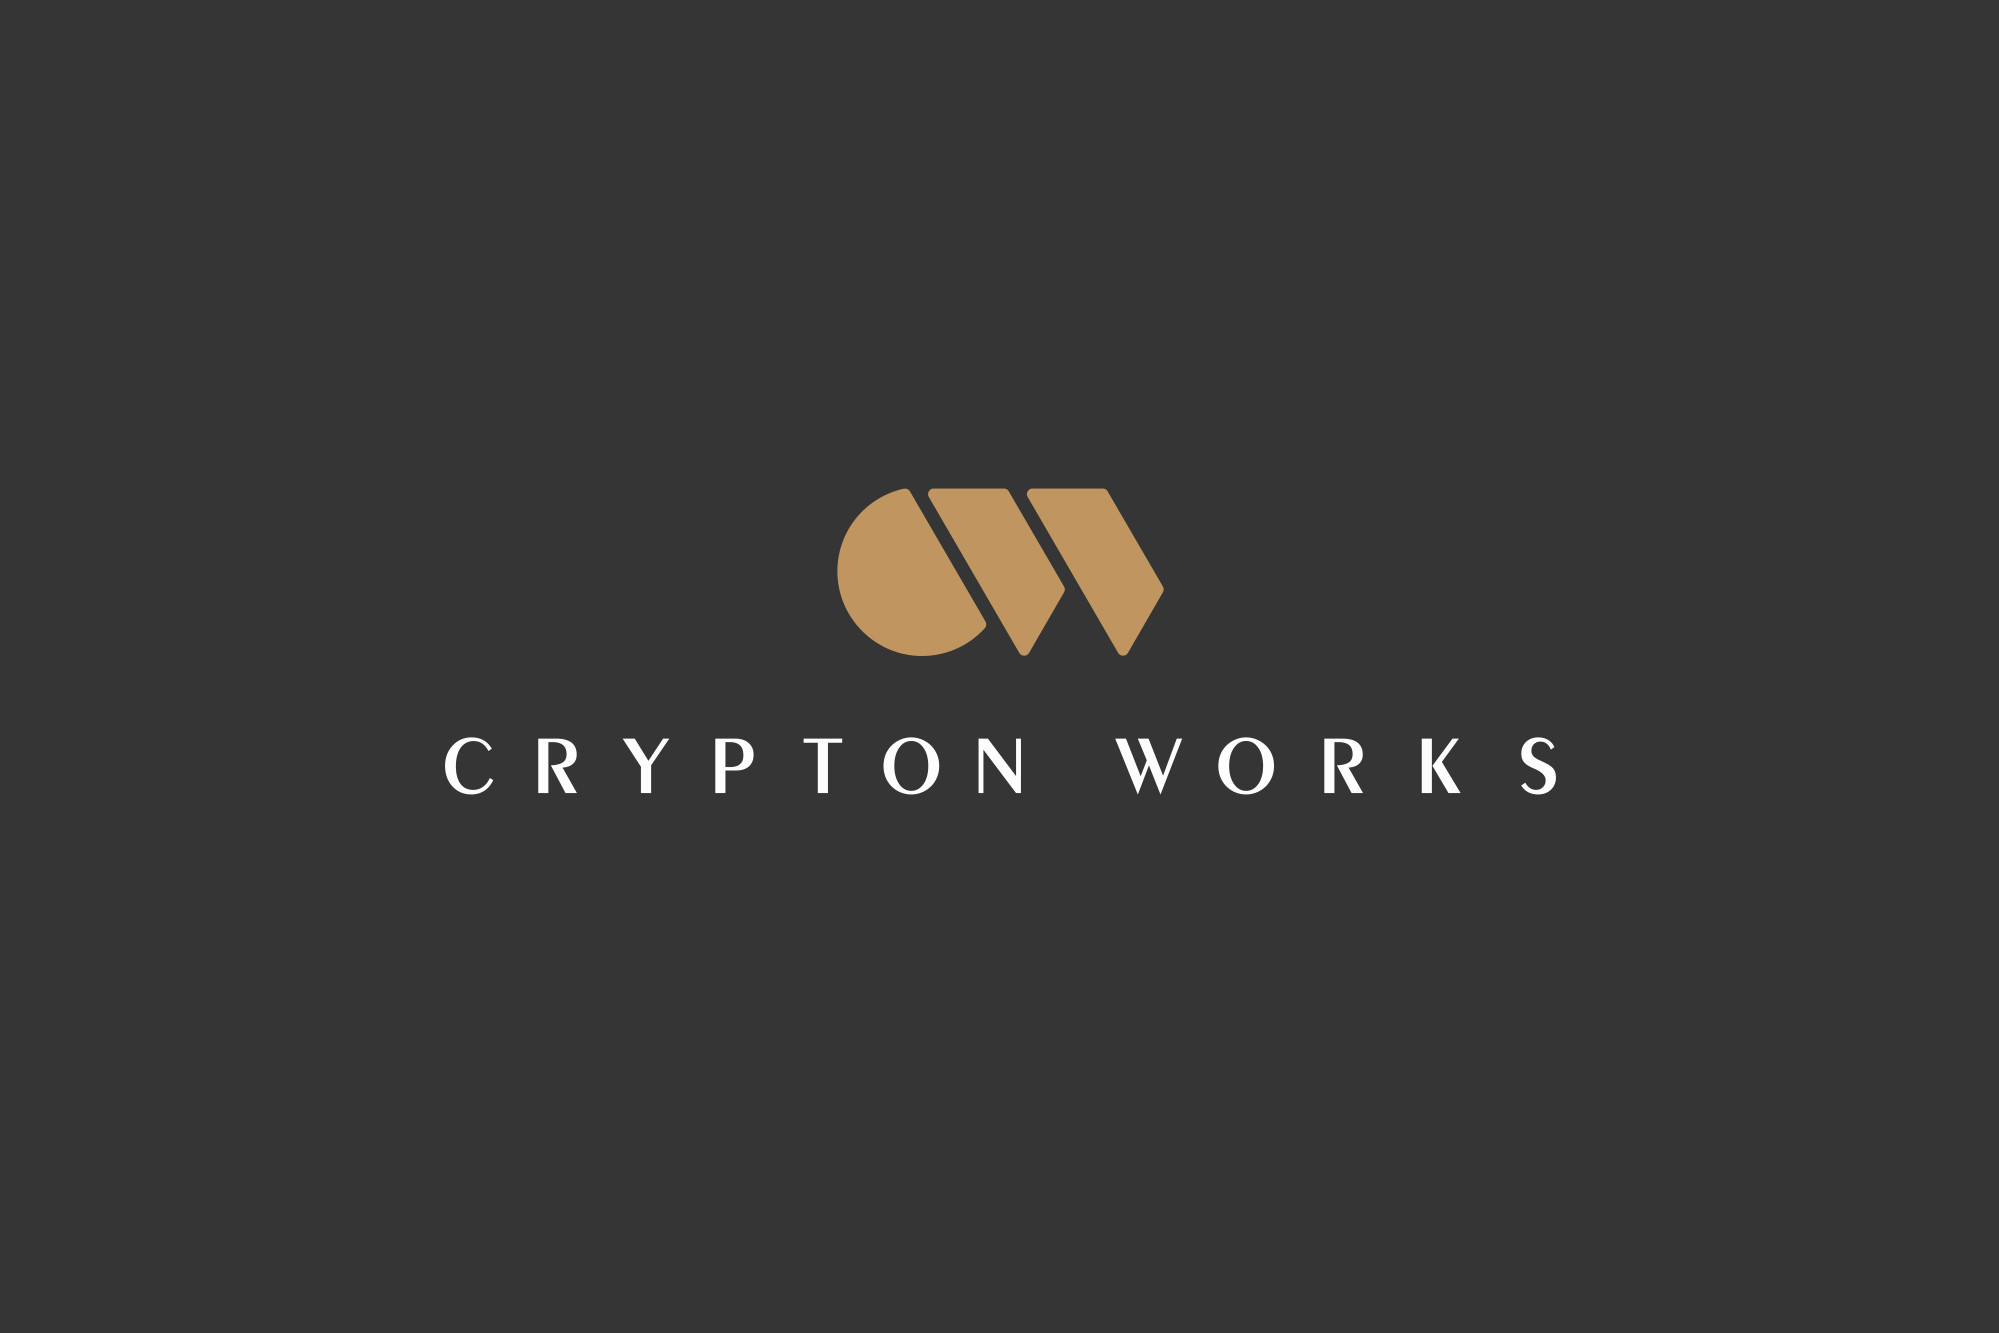 crypton_worksr_logotype_design_remion_design_studio